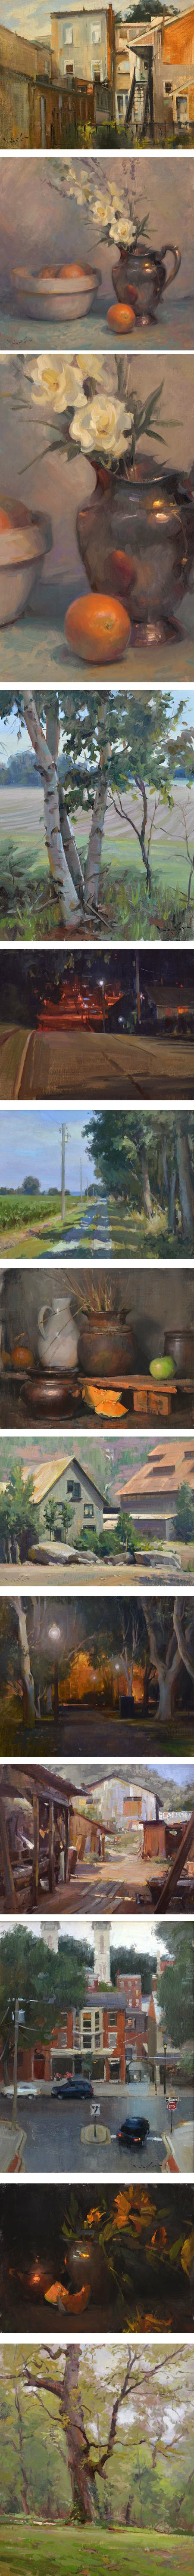 John P. Lasater, landscape and still life painting